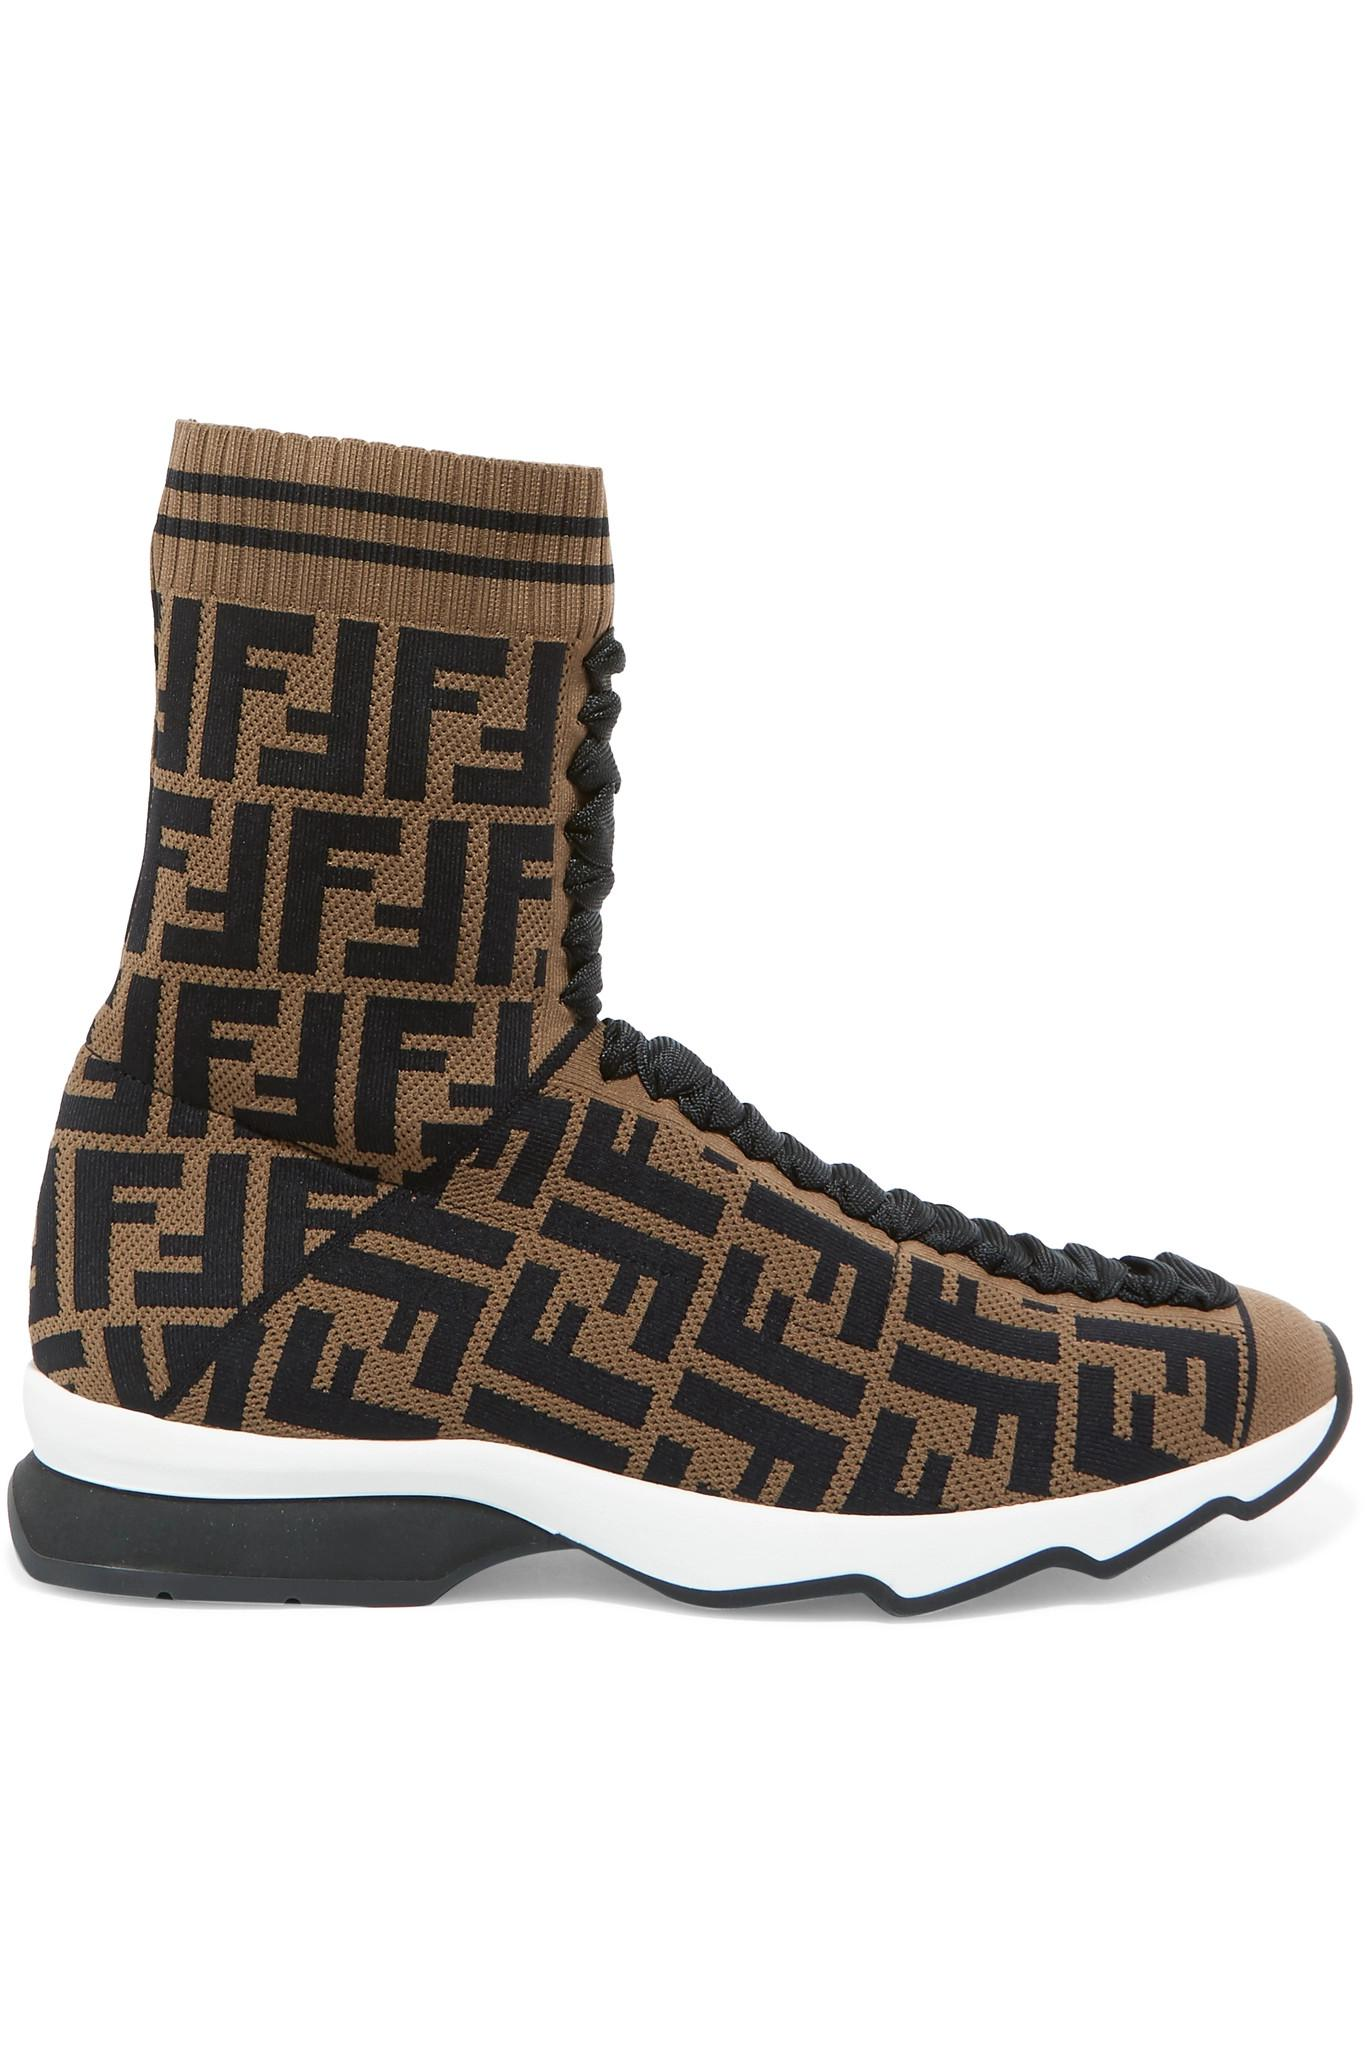 c271ff844345 Lyst - Fendi Logo-jacquard Stretch-knit And Mesh Sneakers